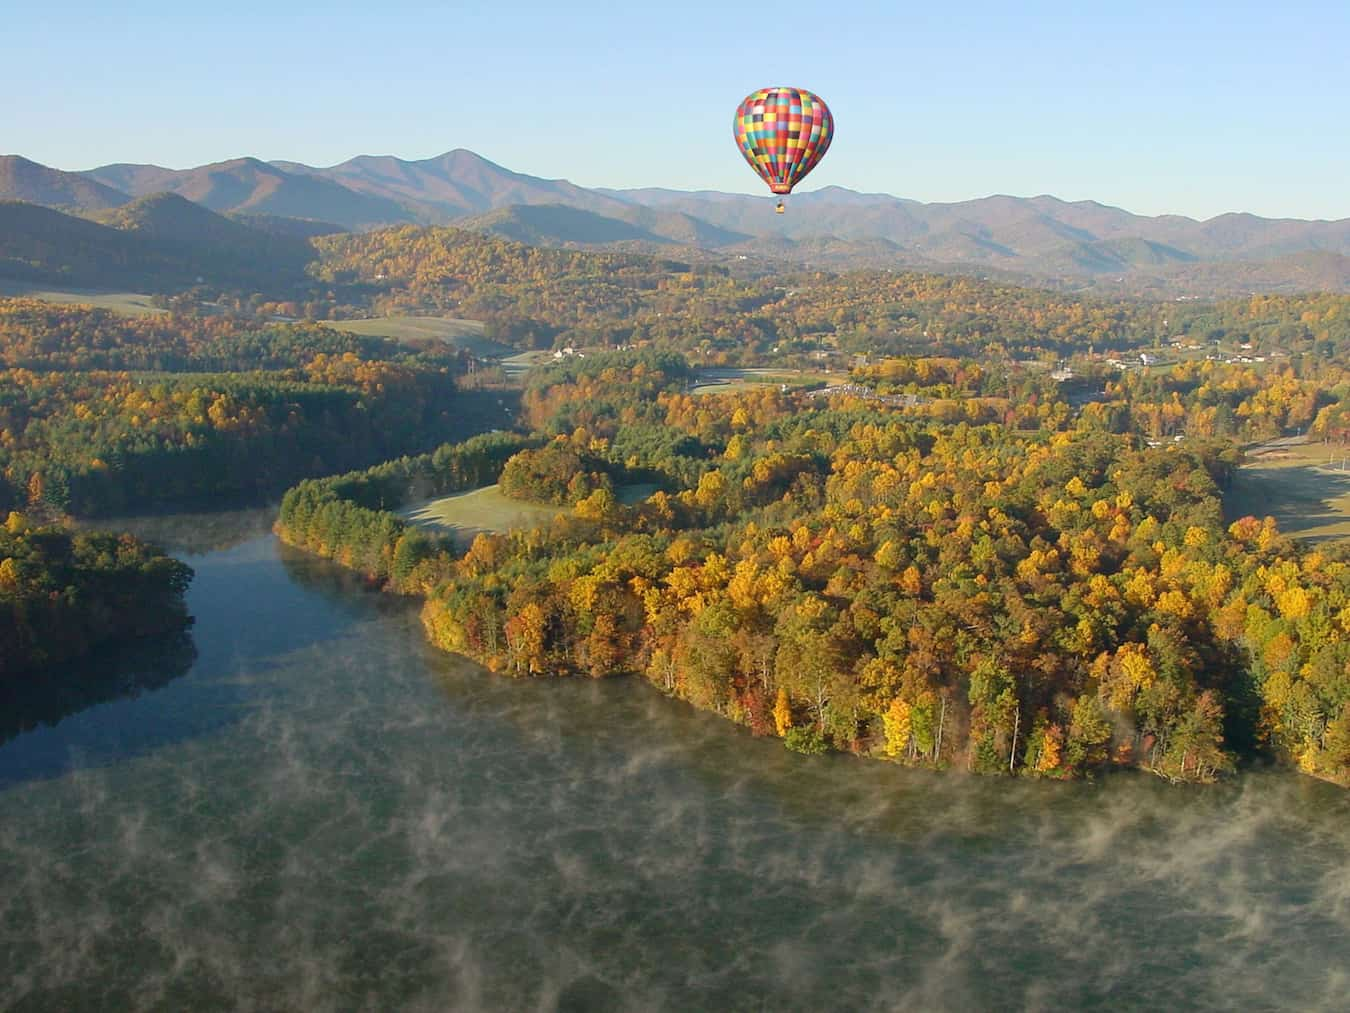 Hot Air Balloon Ride Over Asheville, photo courtesy ExploreAsheville.com